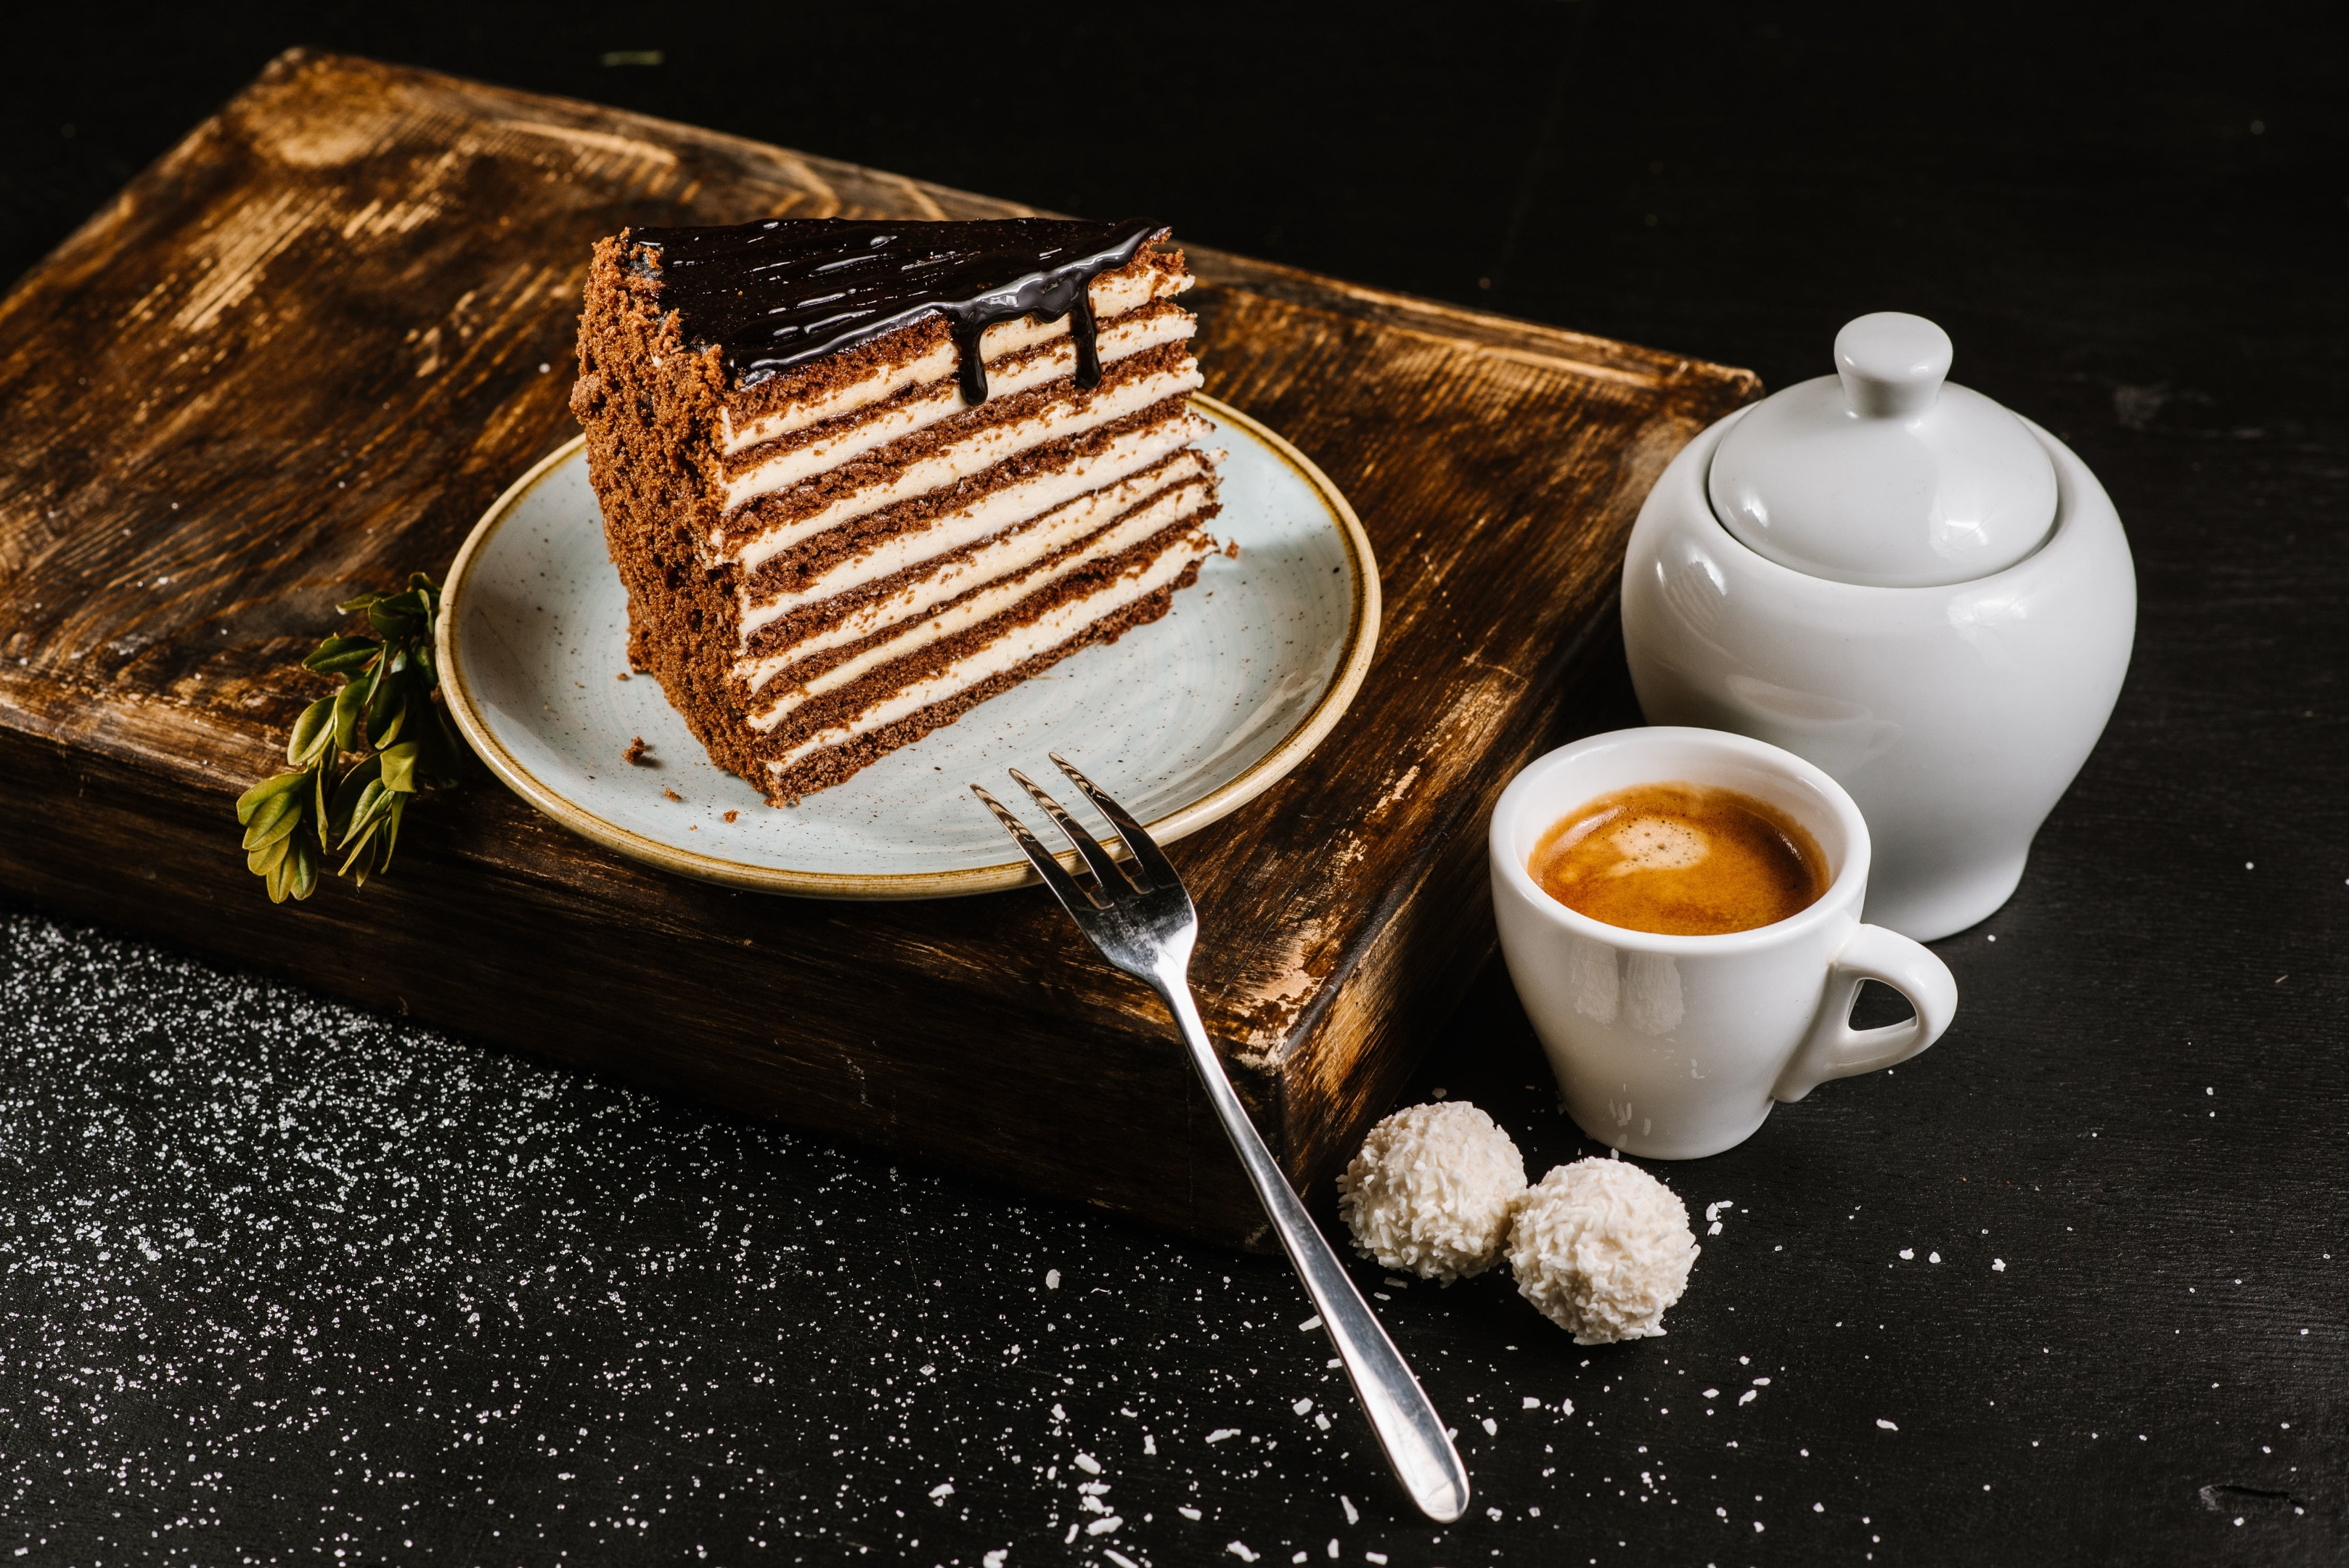 Piece of chocolate cake and espresso